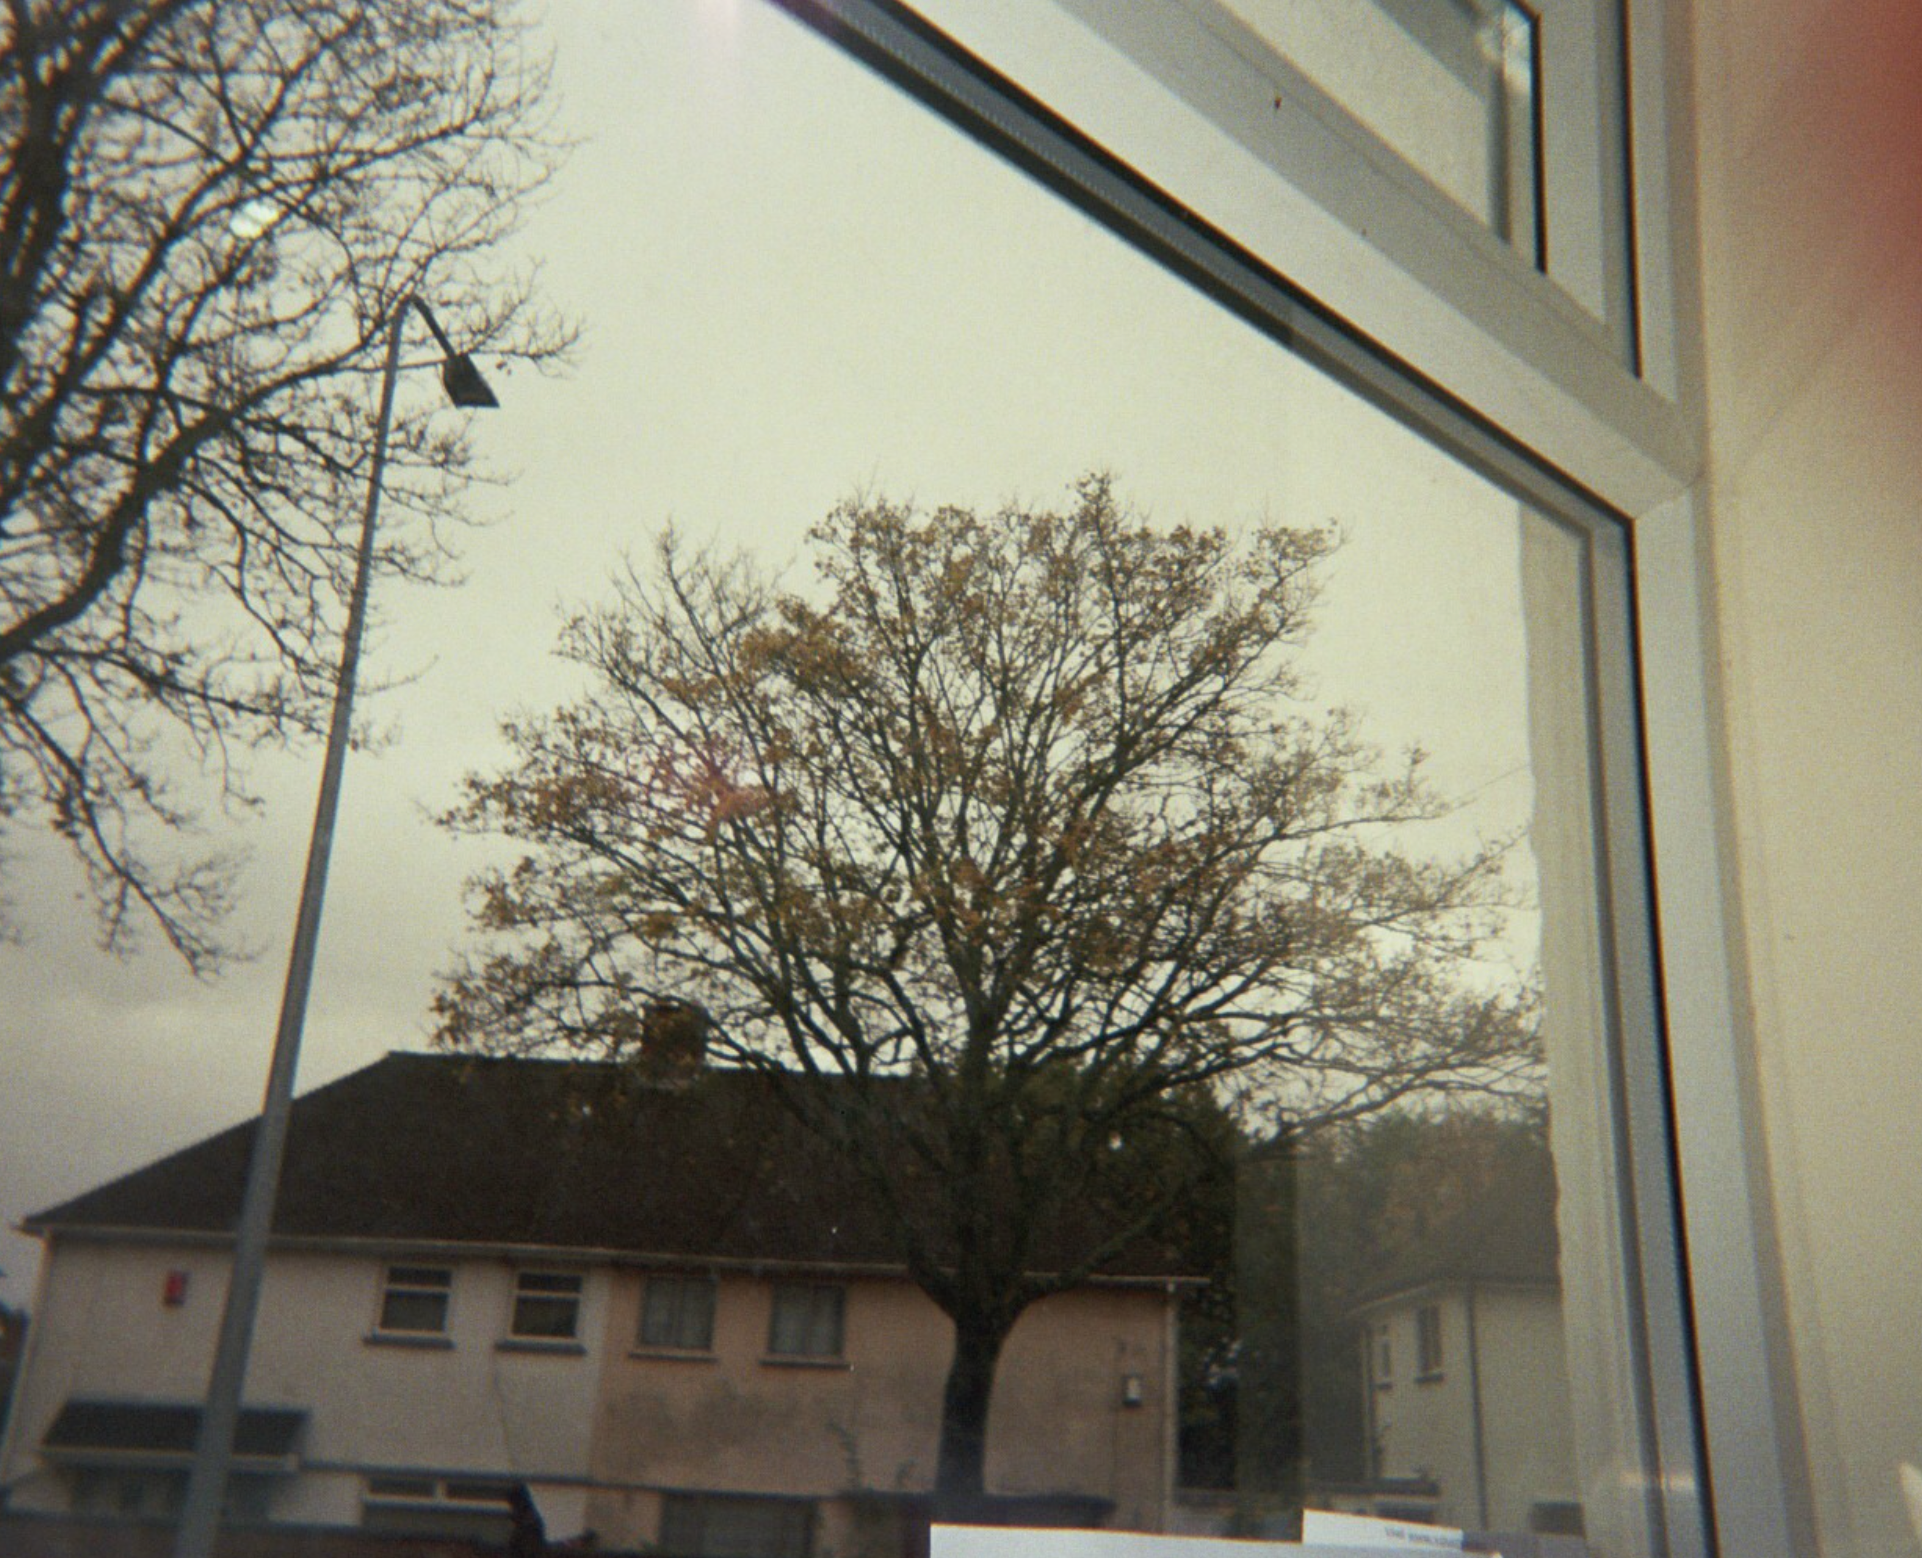 Project working with analogue film